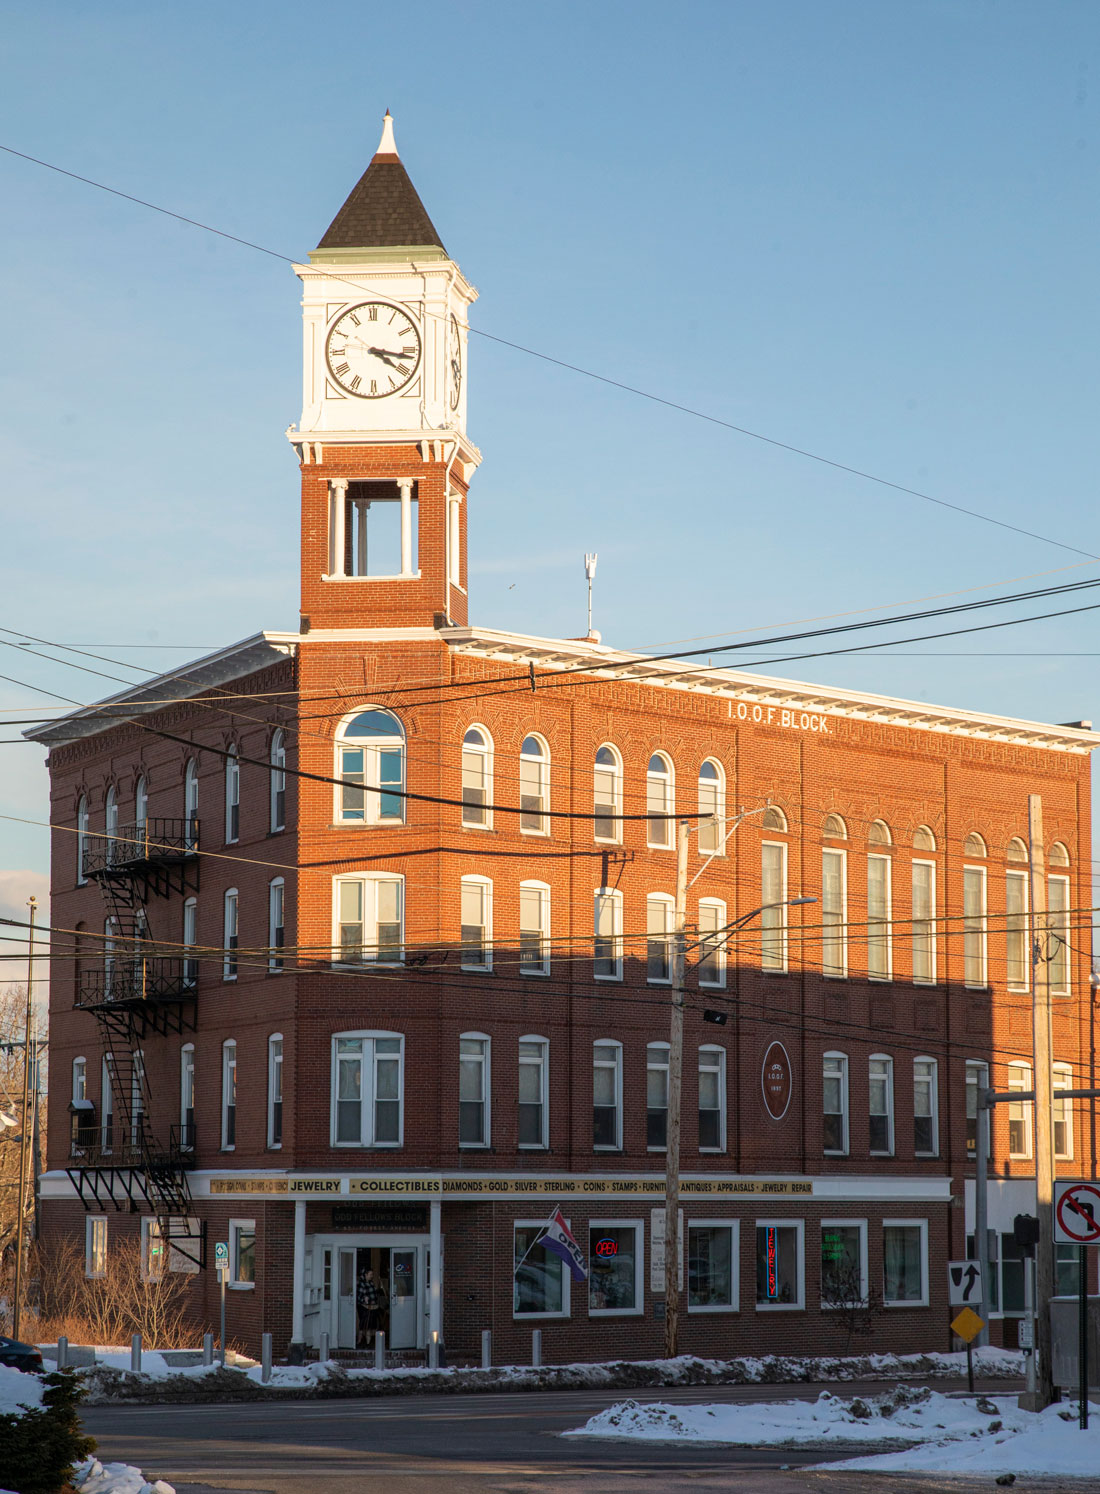 The clock atop the tower on Forest Avenue's Odd Fellows Block